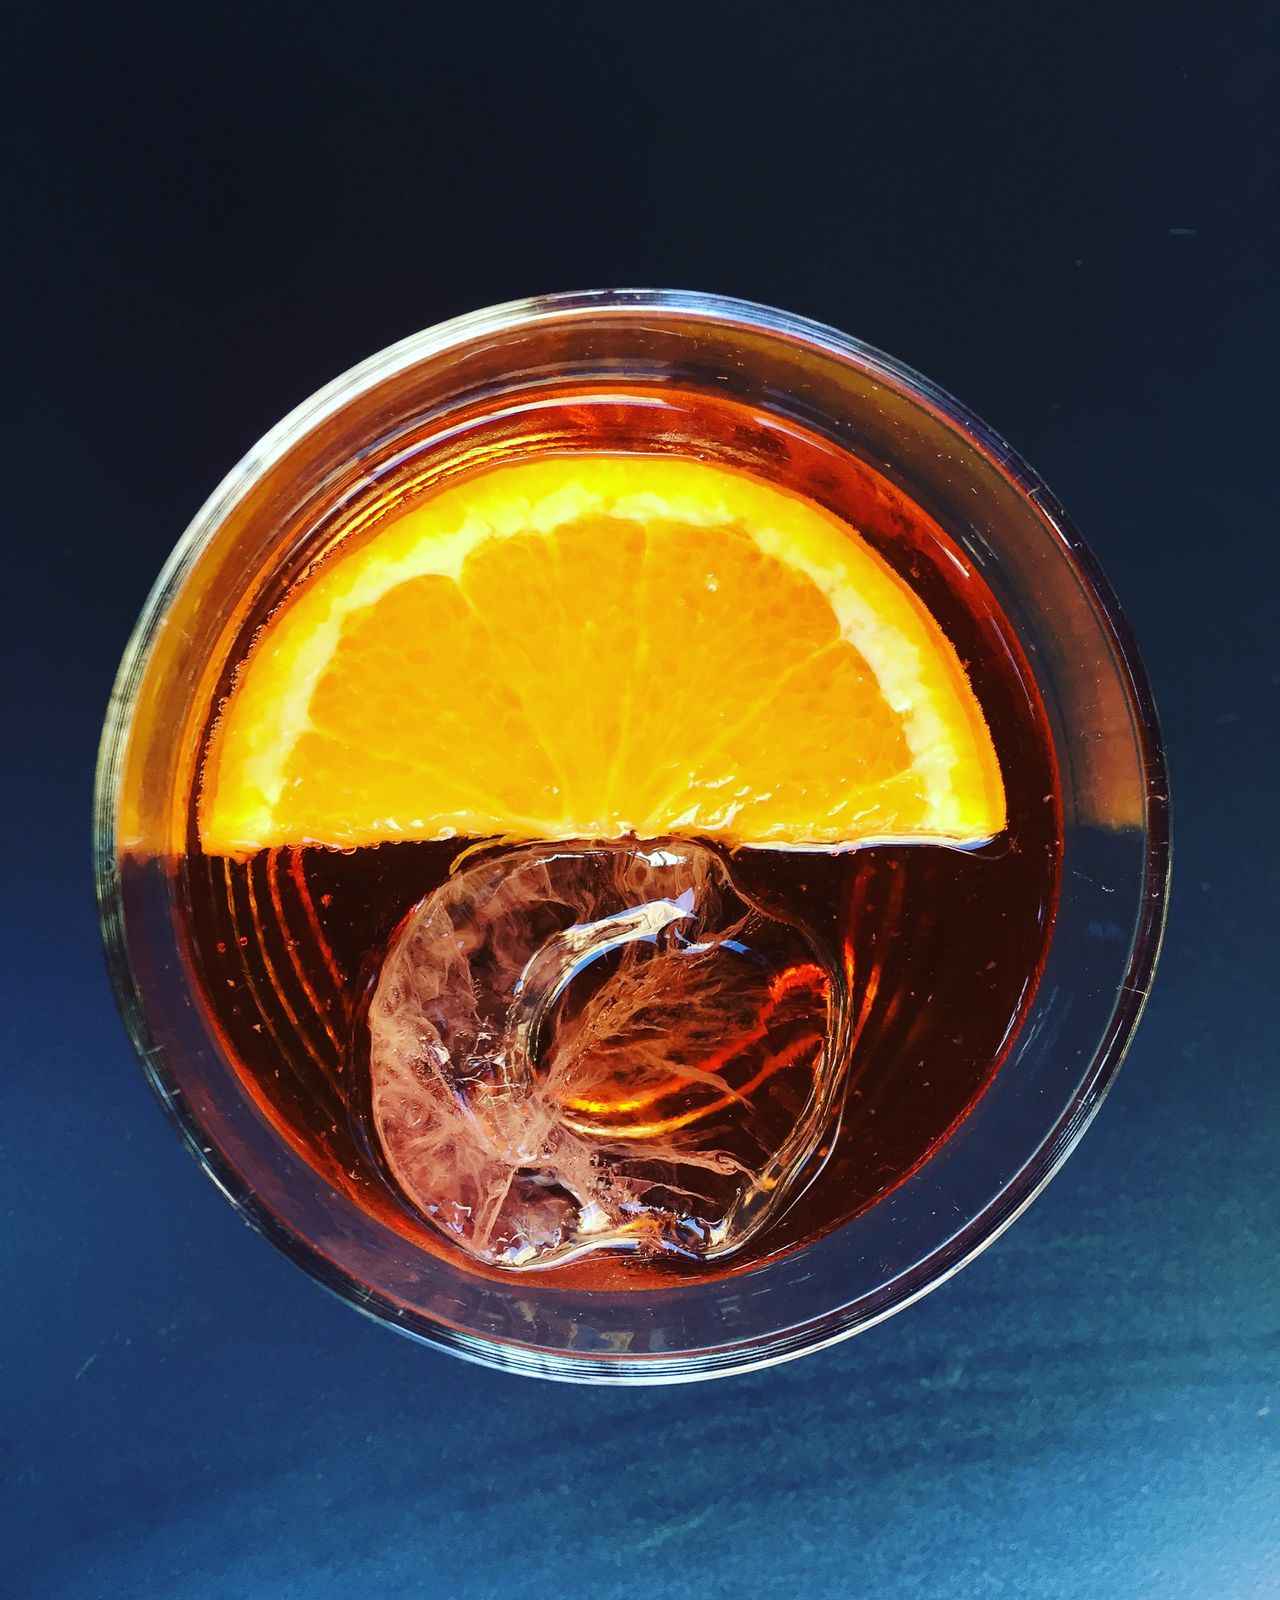 Alcohol Alcoholic Drink Aperol Spritz Citrus Fruit Close-up Cold Drink Colorful Day Directly Above Drink Drinking Glass Food And Drink Freshness From Above  Healthy Eating Ice Cube No People Orange Orange Slice Refreshment SLICE Summer Drink Table